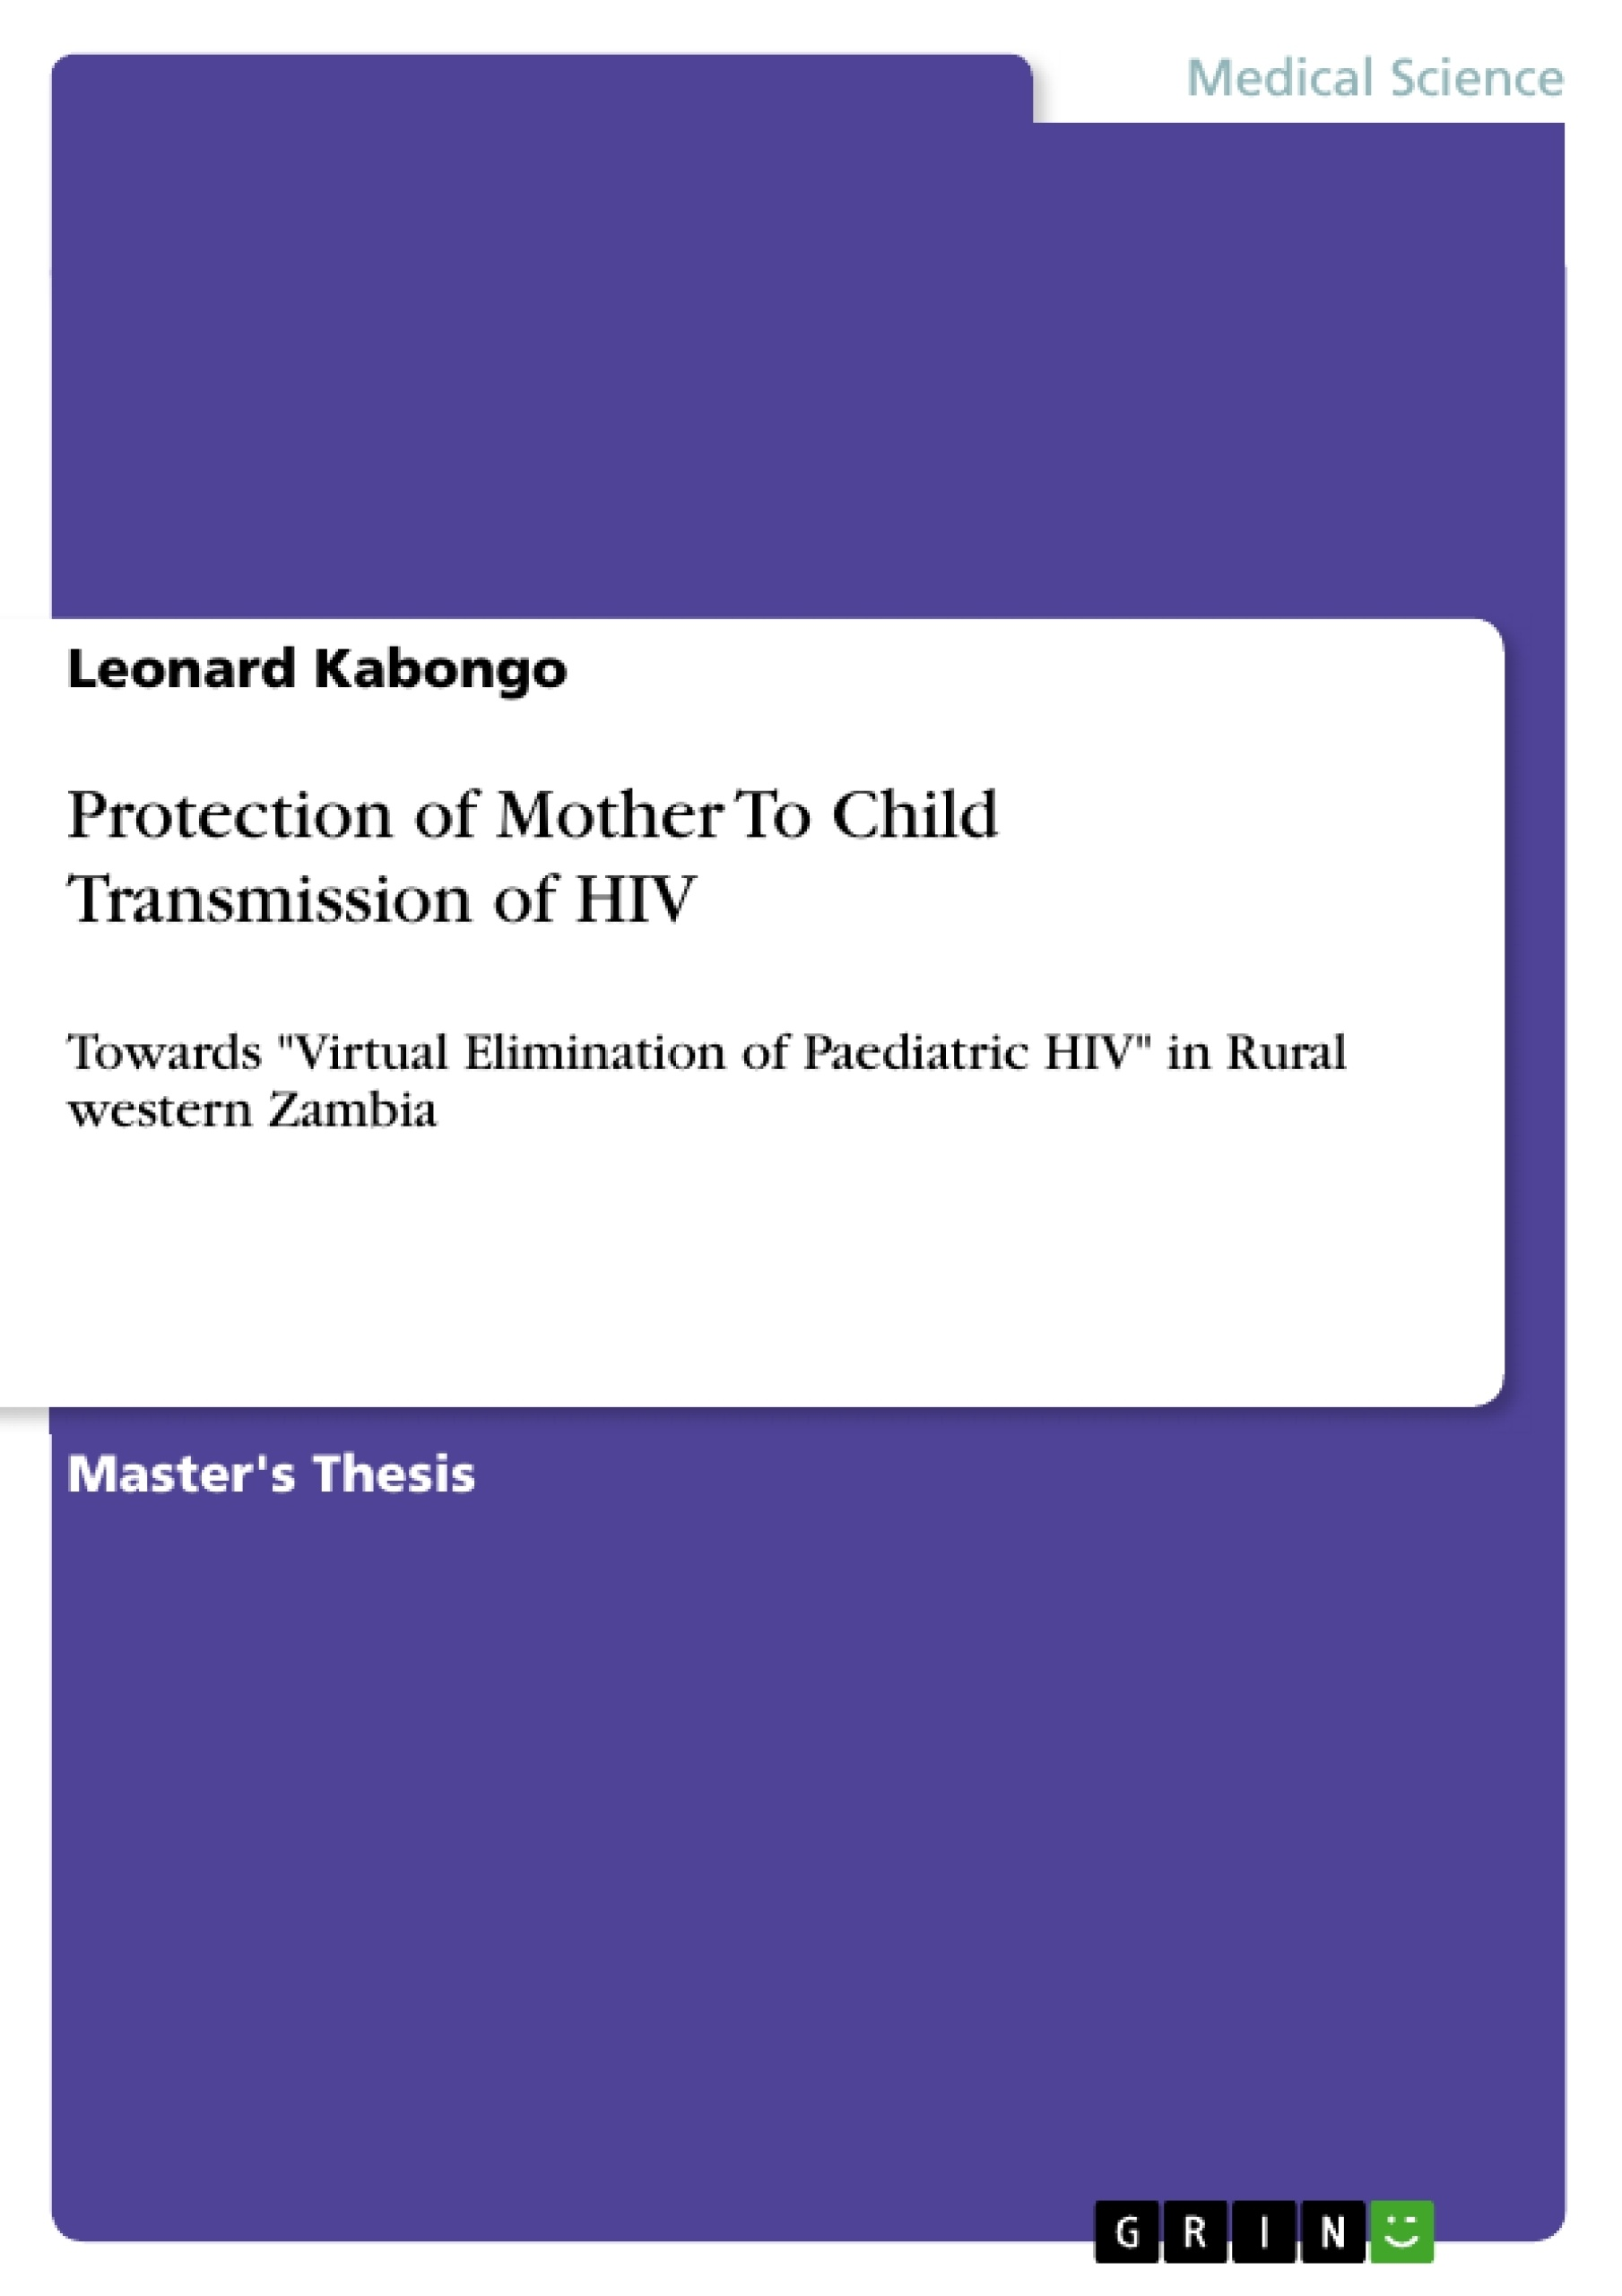 hiv thesis statement protection of mother to child transmission of hiv self